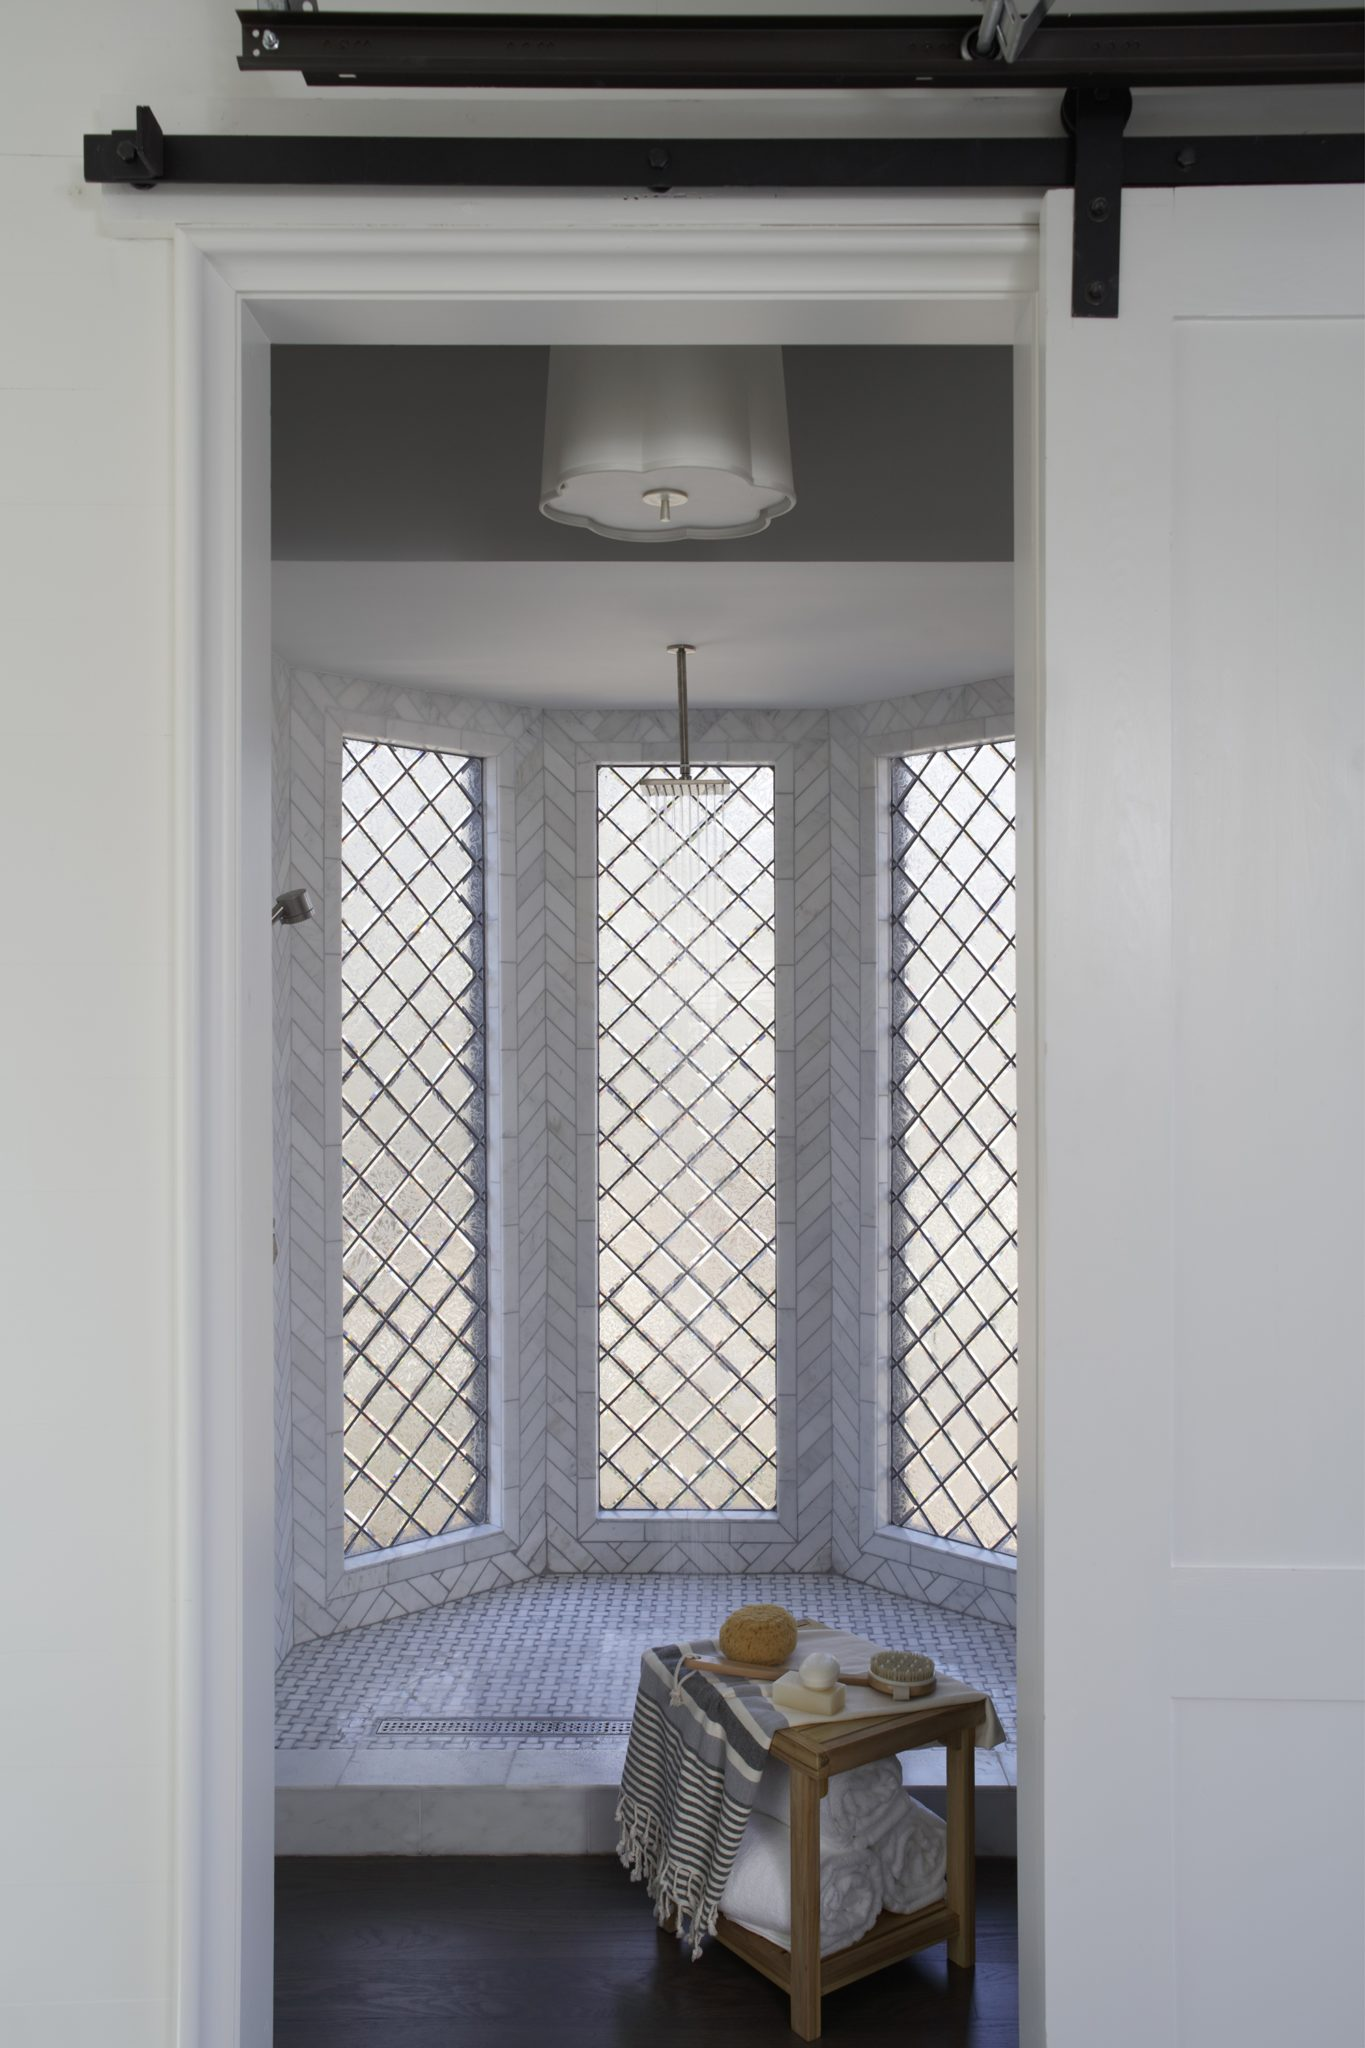 Within the walk-in marble shower, Christopher Architecture & Interiorsdesigned a custom lead-glass window to facilitate natural light and ornament the exterior.